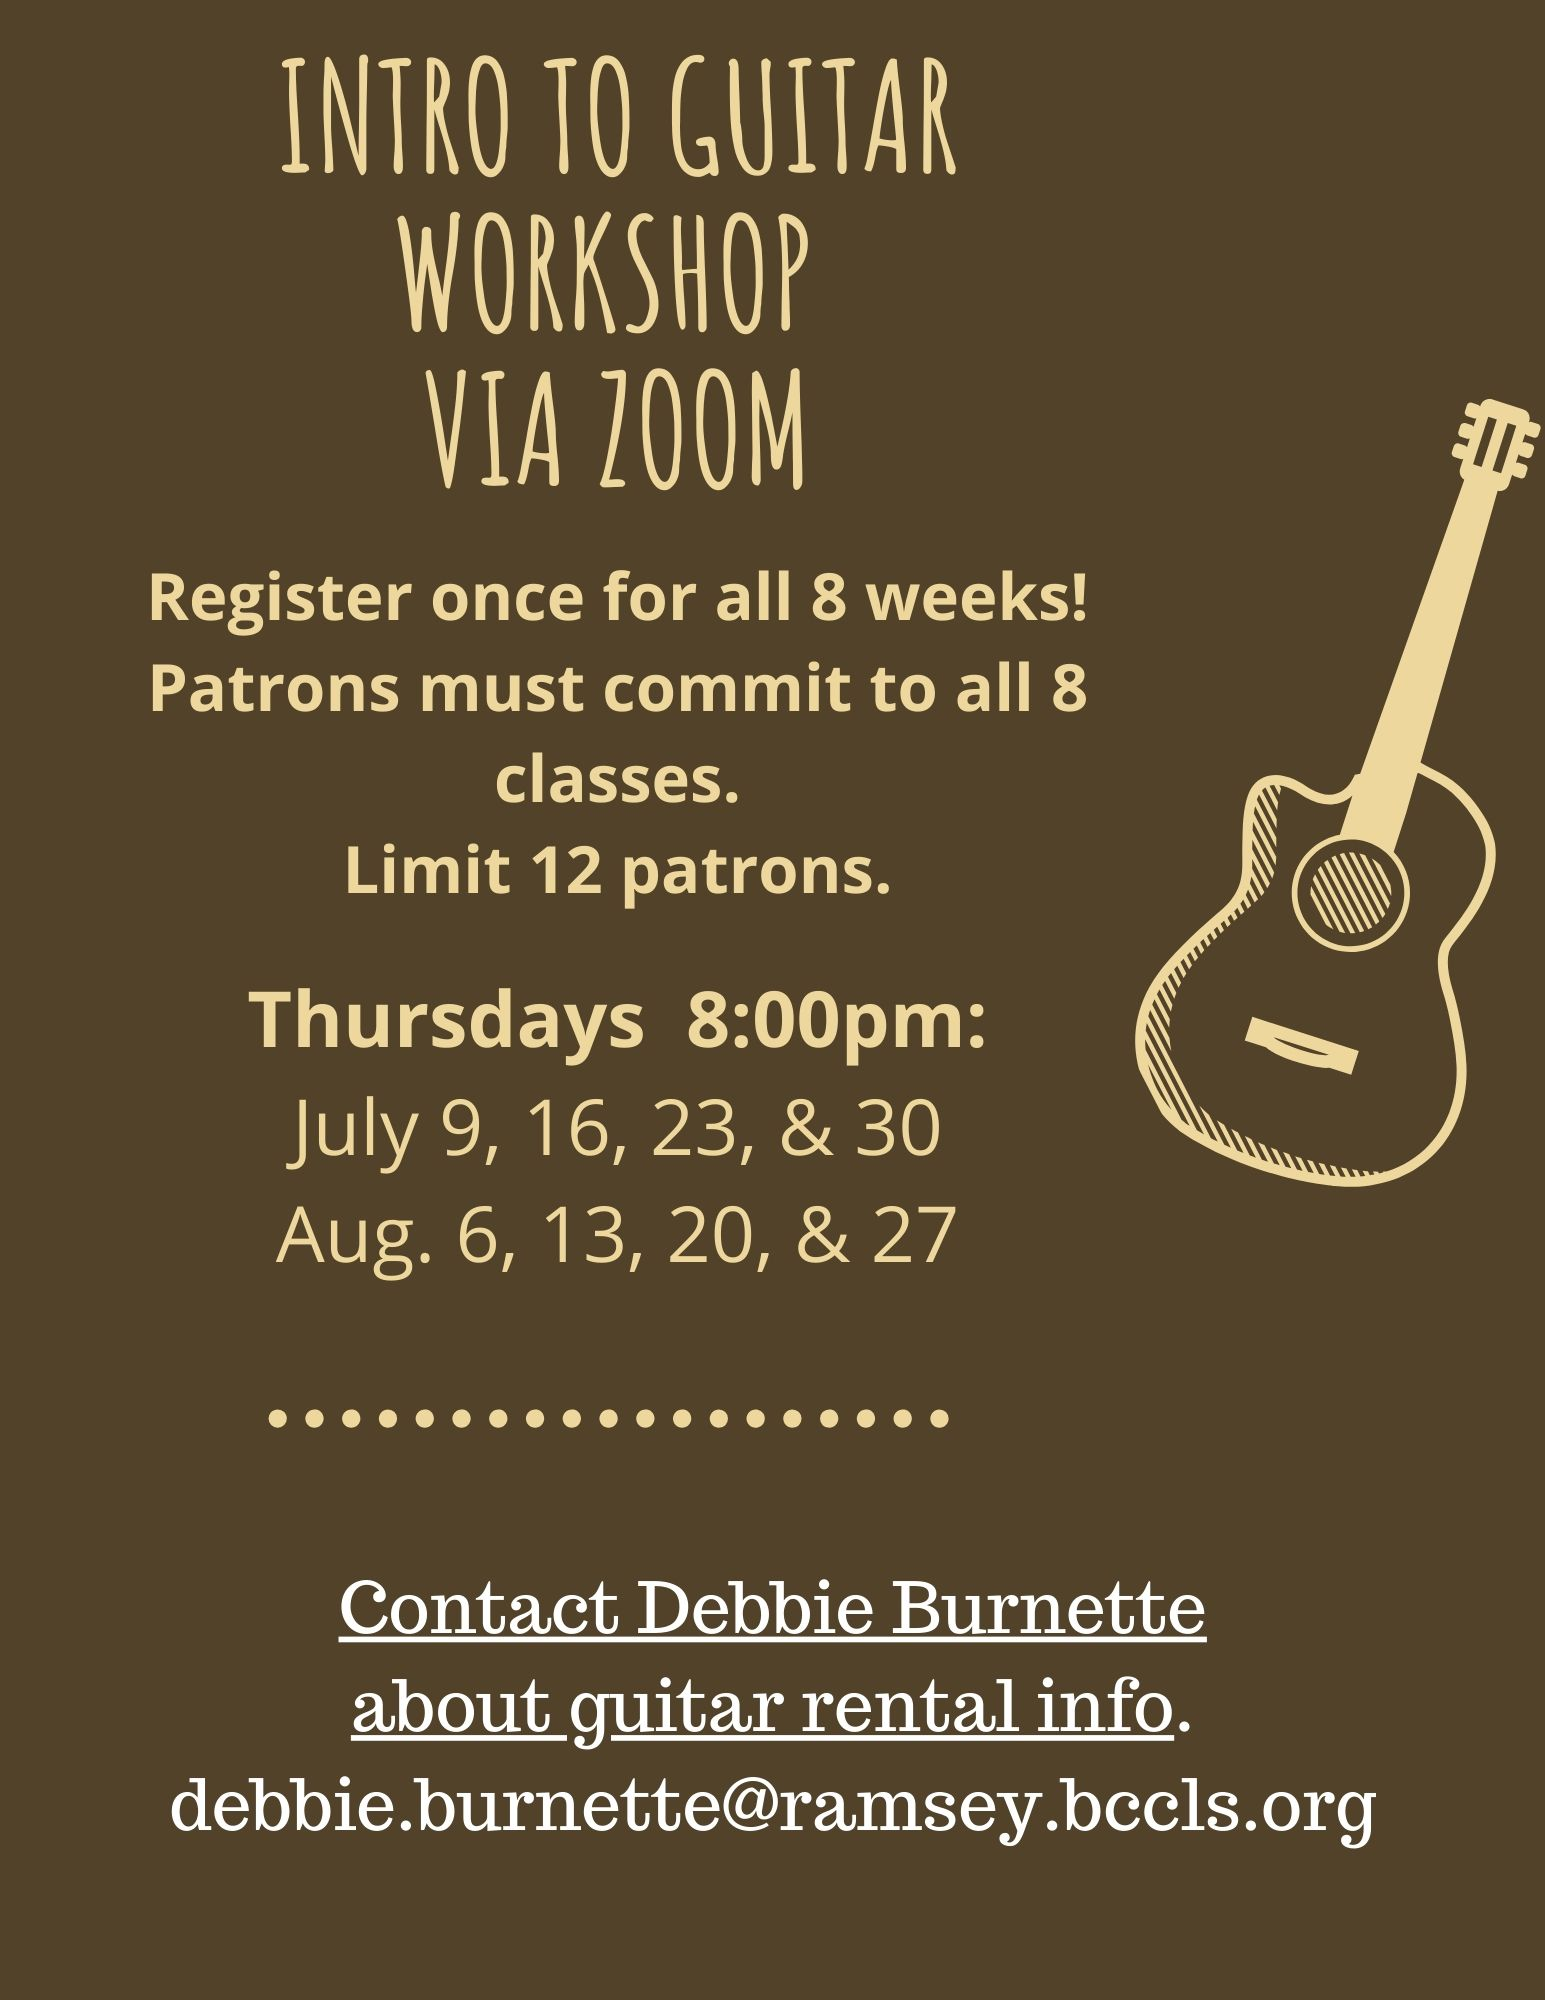 Intro to Guitar Workshop via Zoom